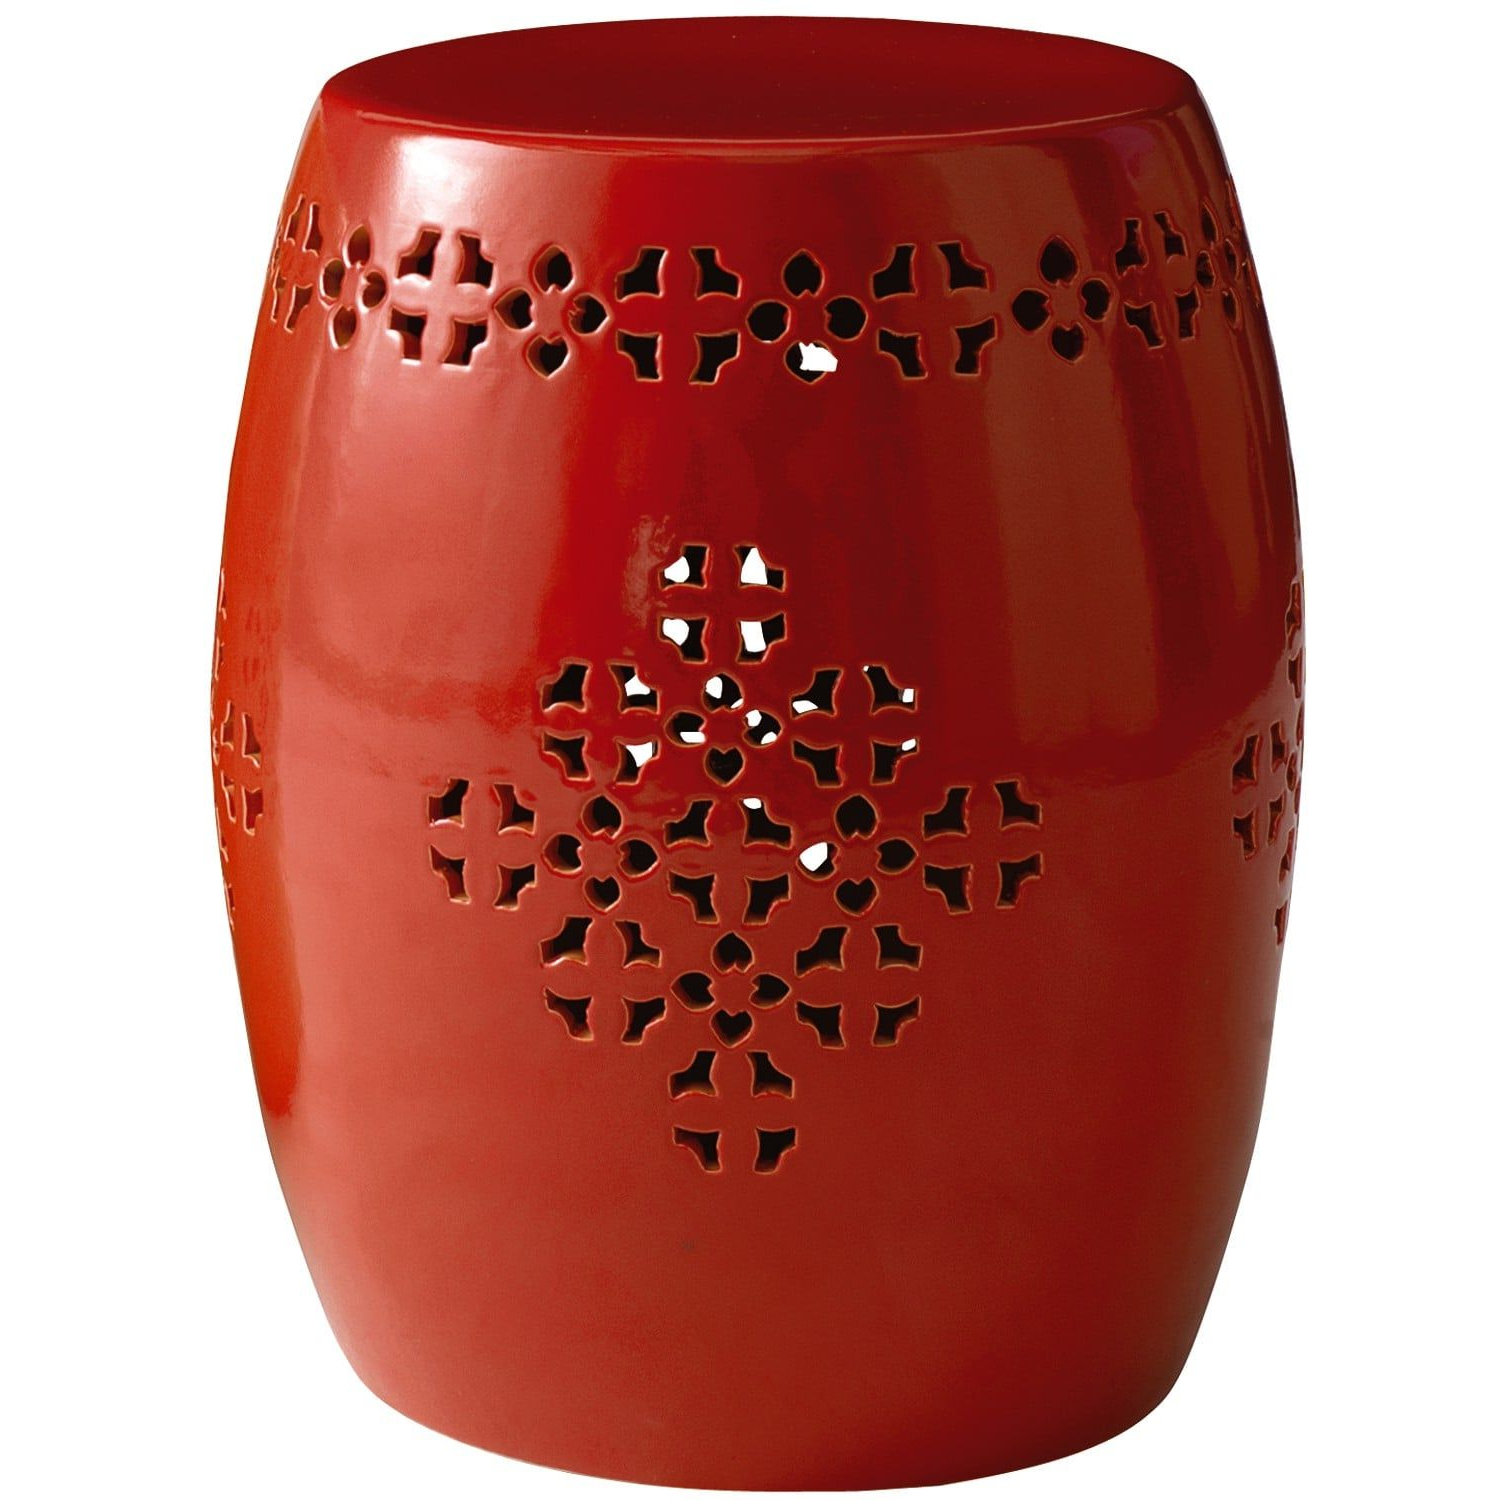 Most Current Pin On Rojos Vinos Within Engelhardt Ceramic Garden Stools (View 8 of 30)